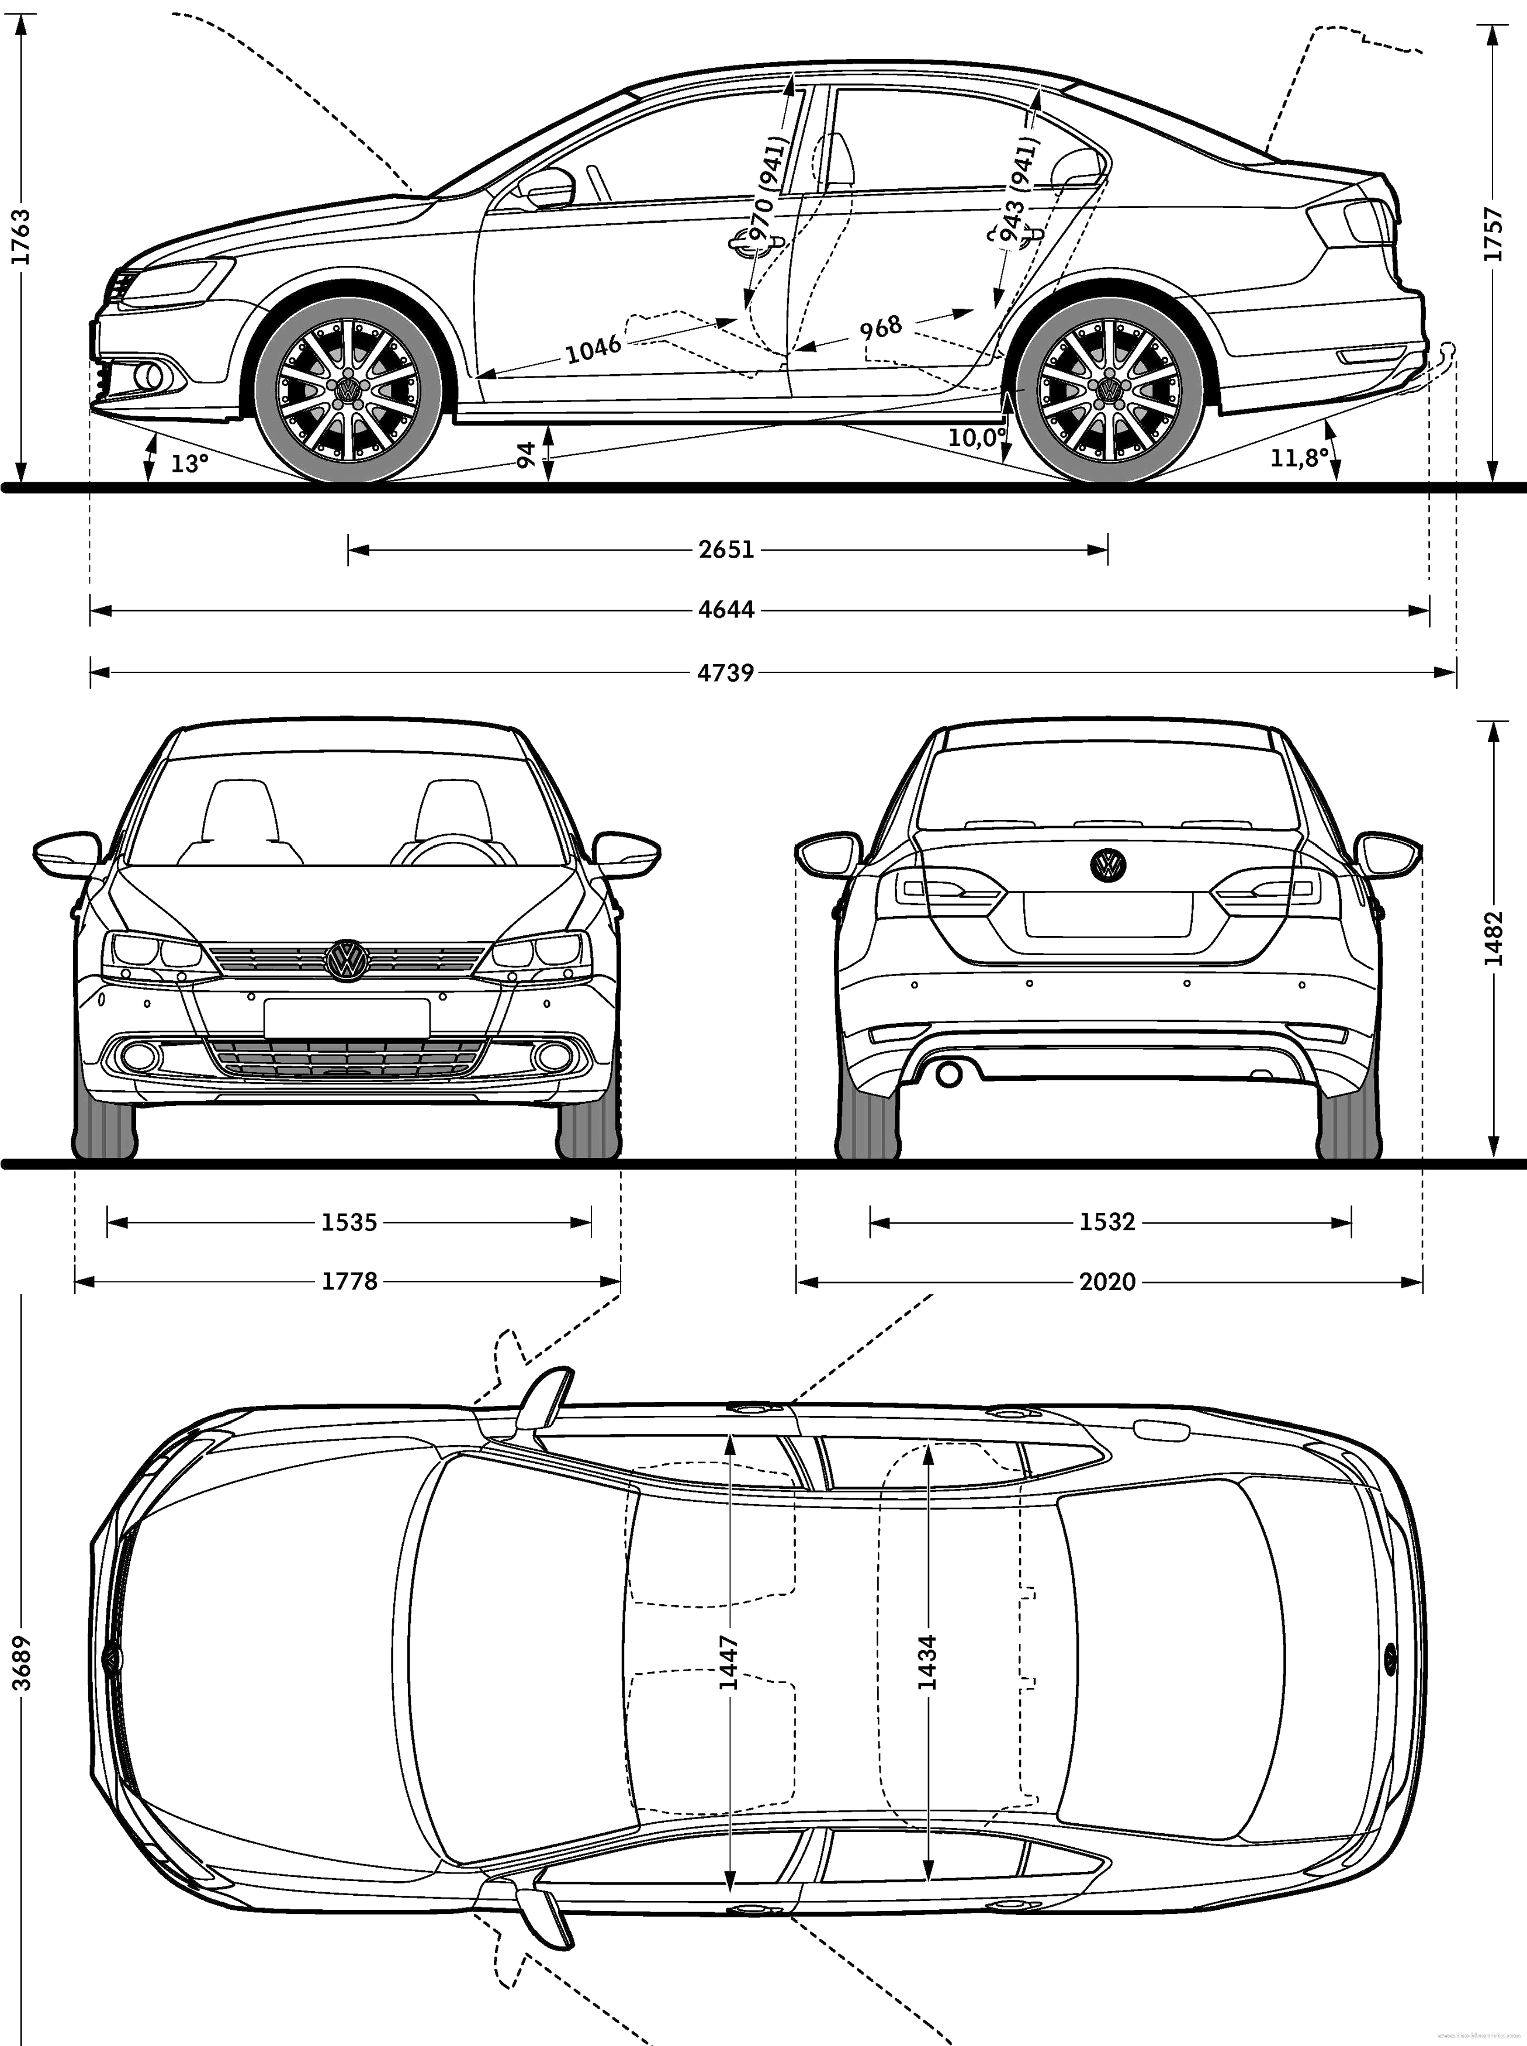 Find The Blueprint And Turning Diameter Of A Car F... | Chegg.com